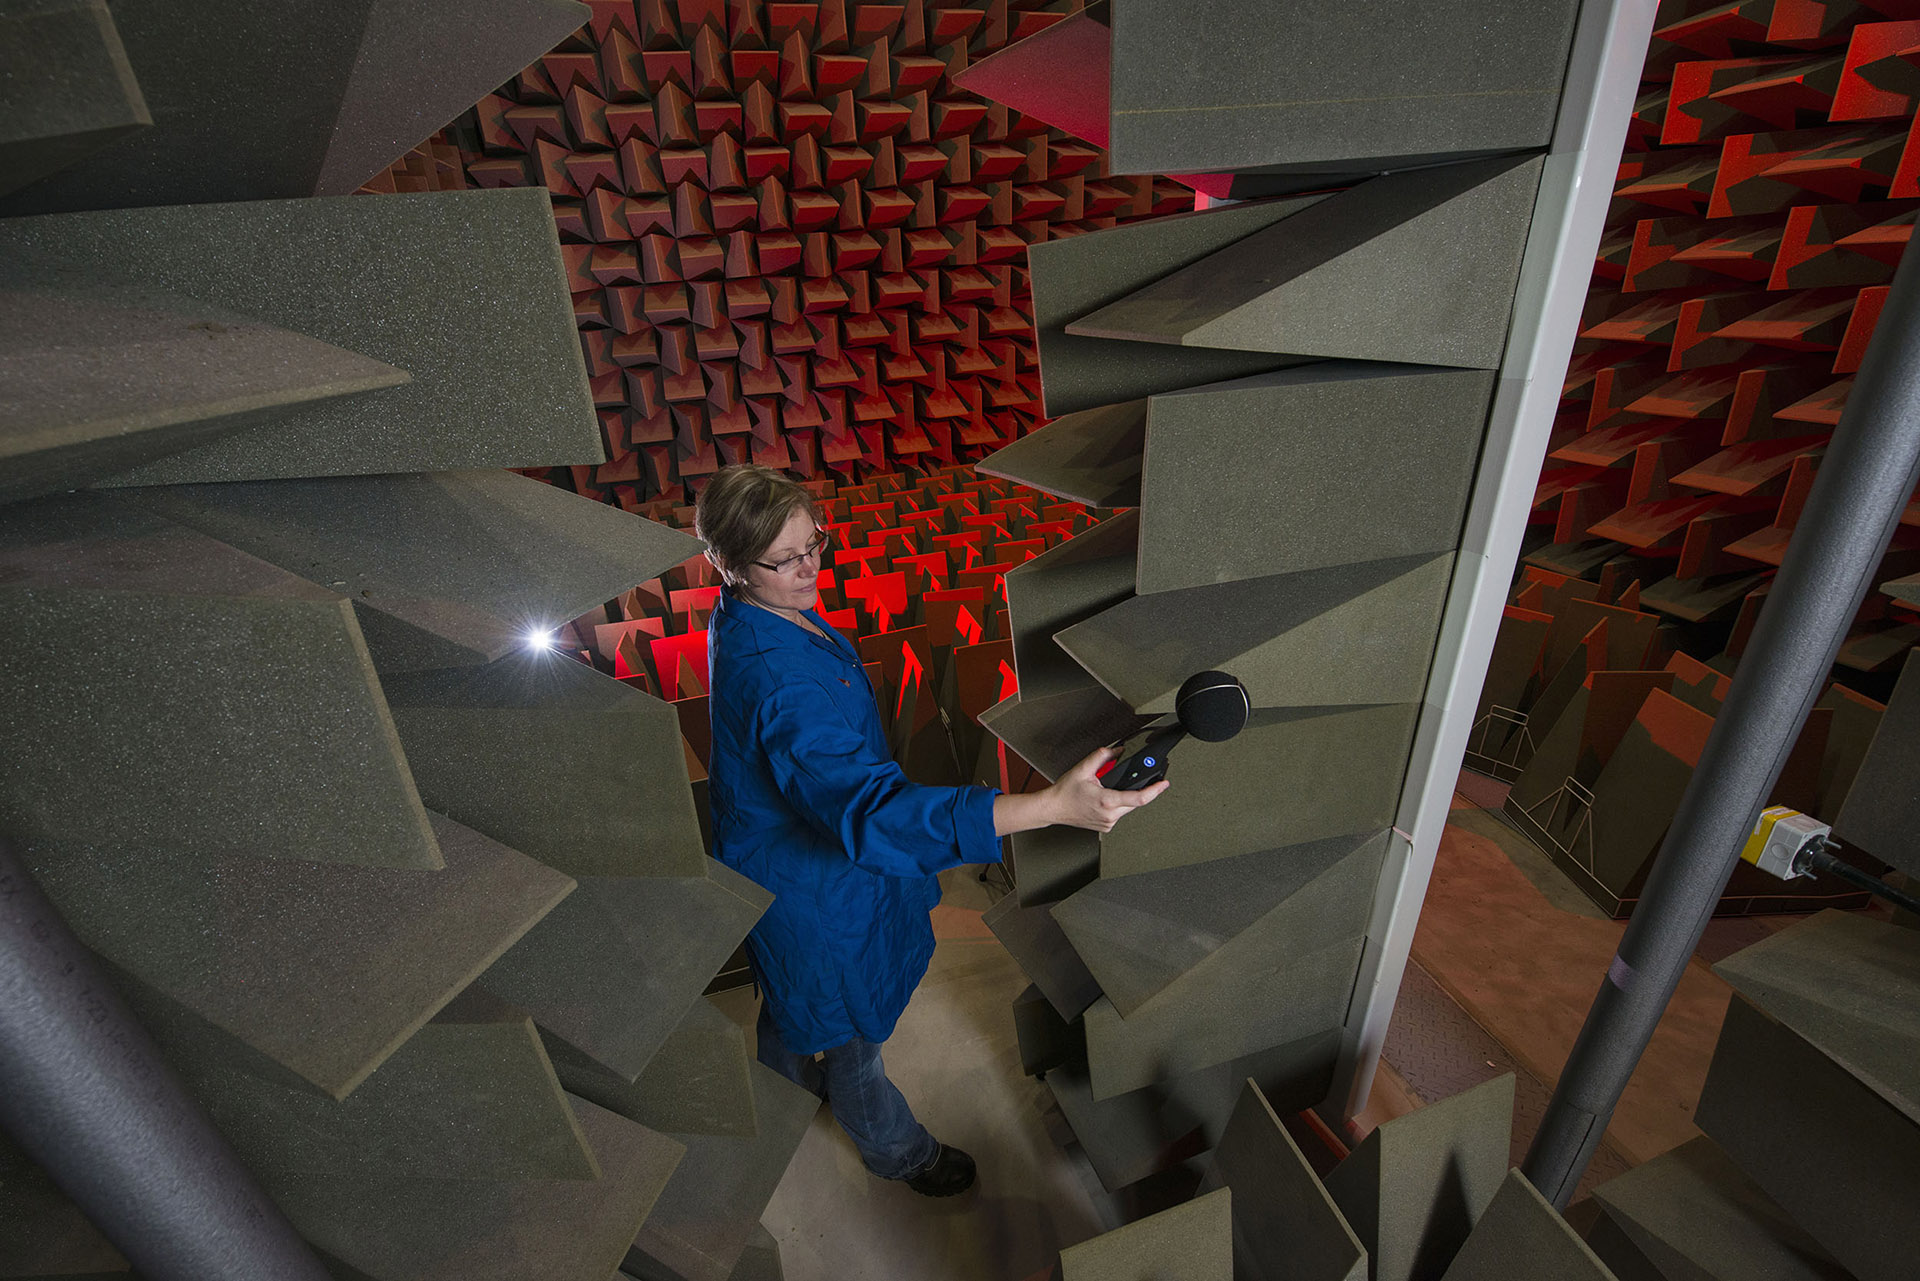 Scientist uses an anechoic chamber, a room designed to completely absorb reflections of either sound